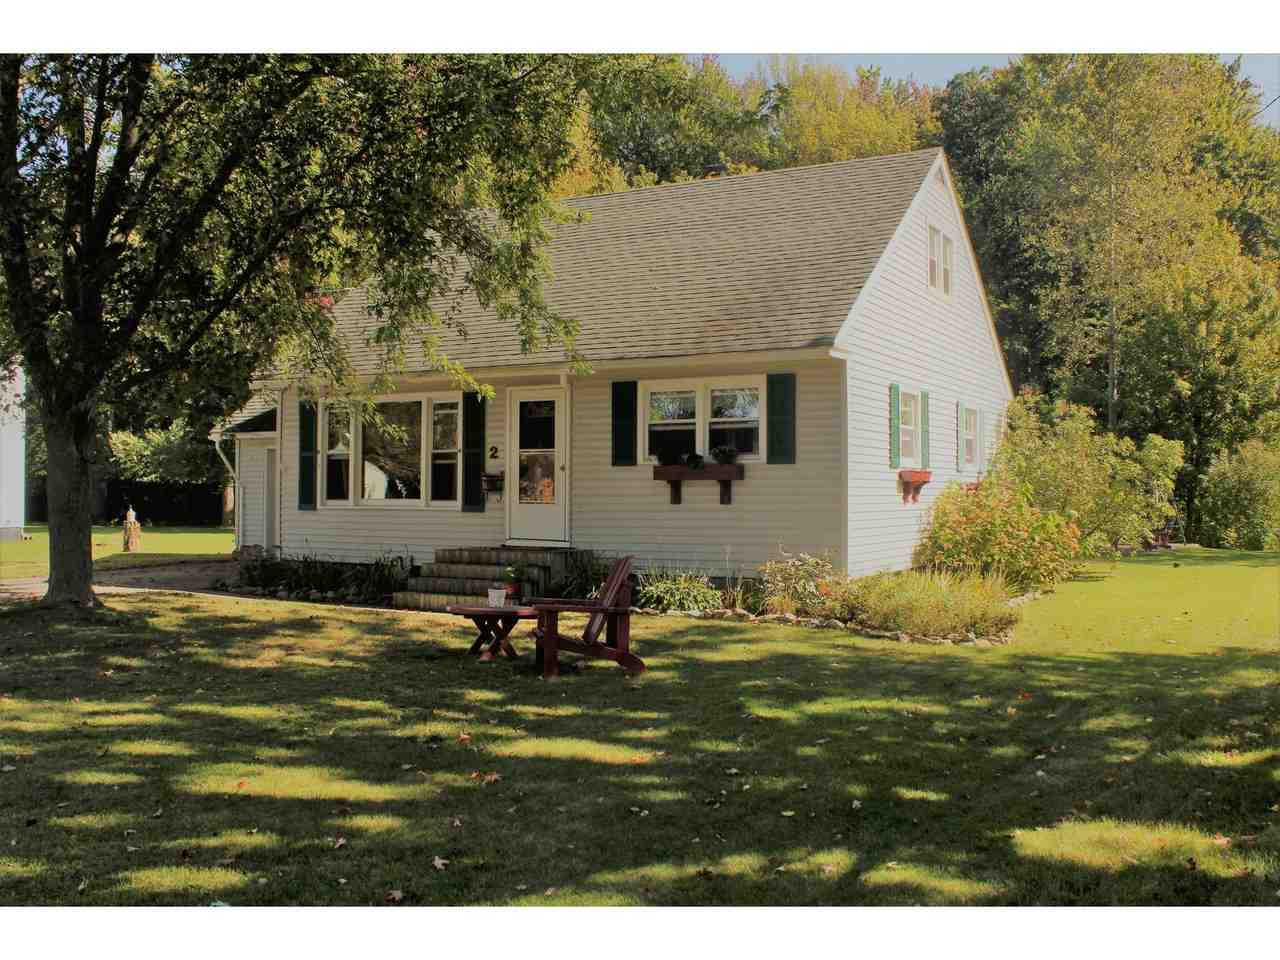 Sold property in Swanton